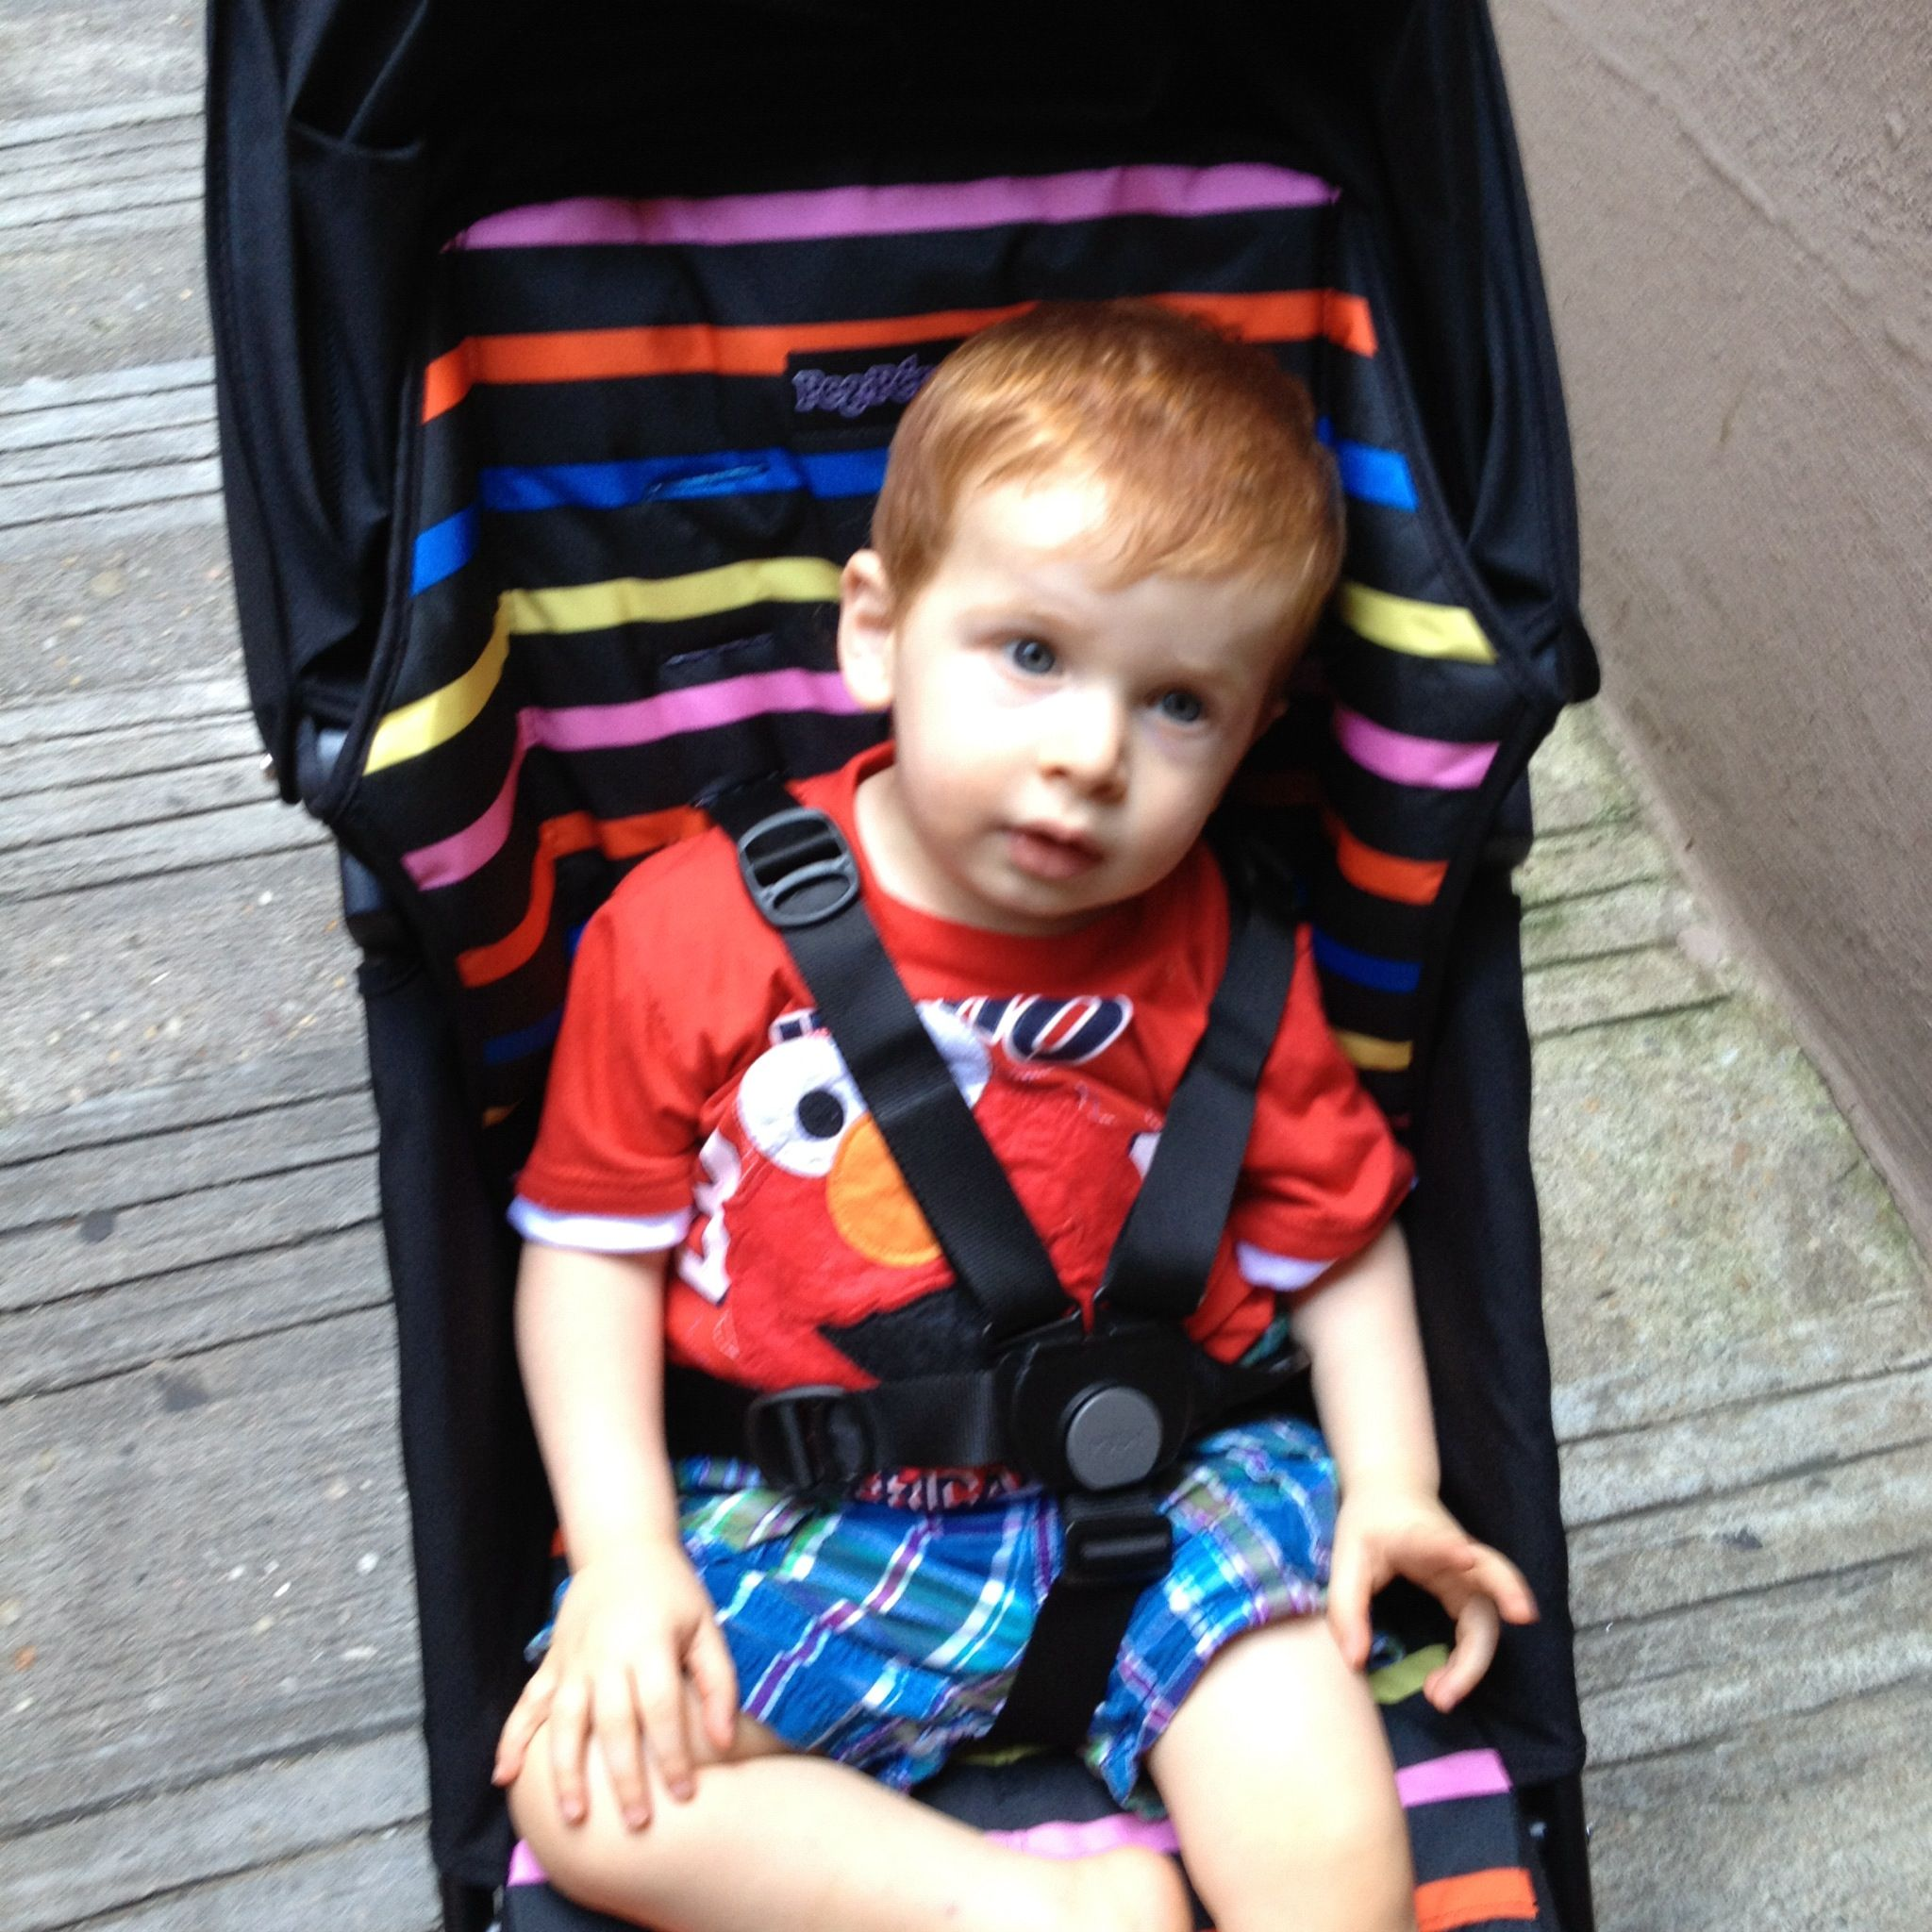 Stroller Review Peg Perego Pliko Mini Stroller